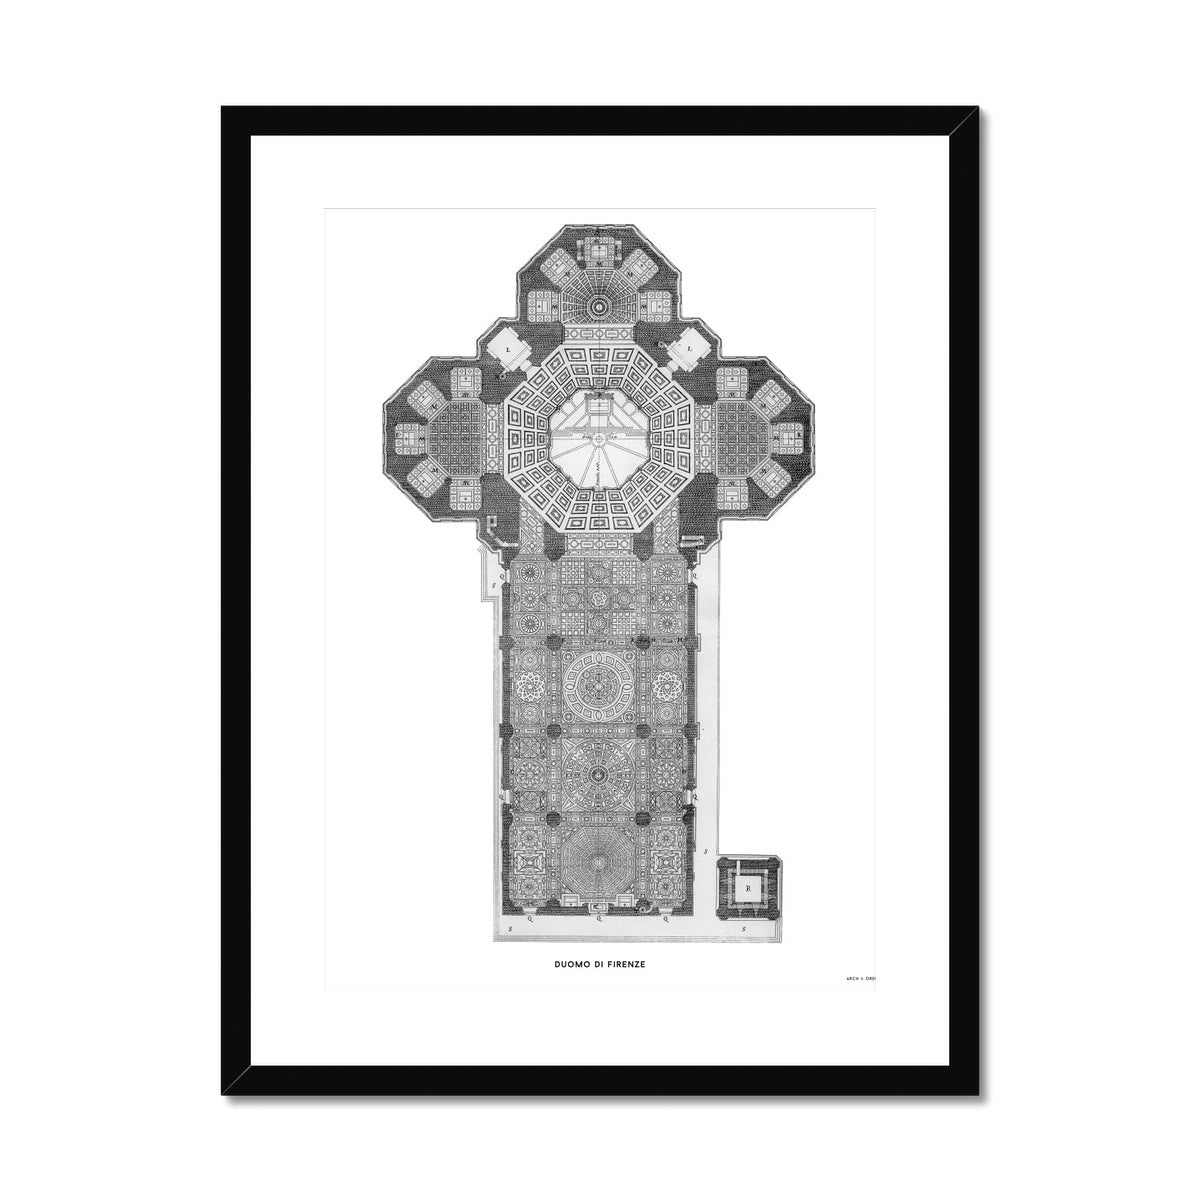 Duomo di Firenze - Floor Plan - White -  Framed & Mounted Print